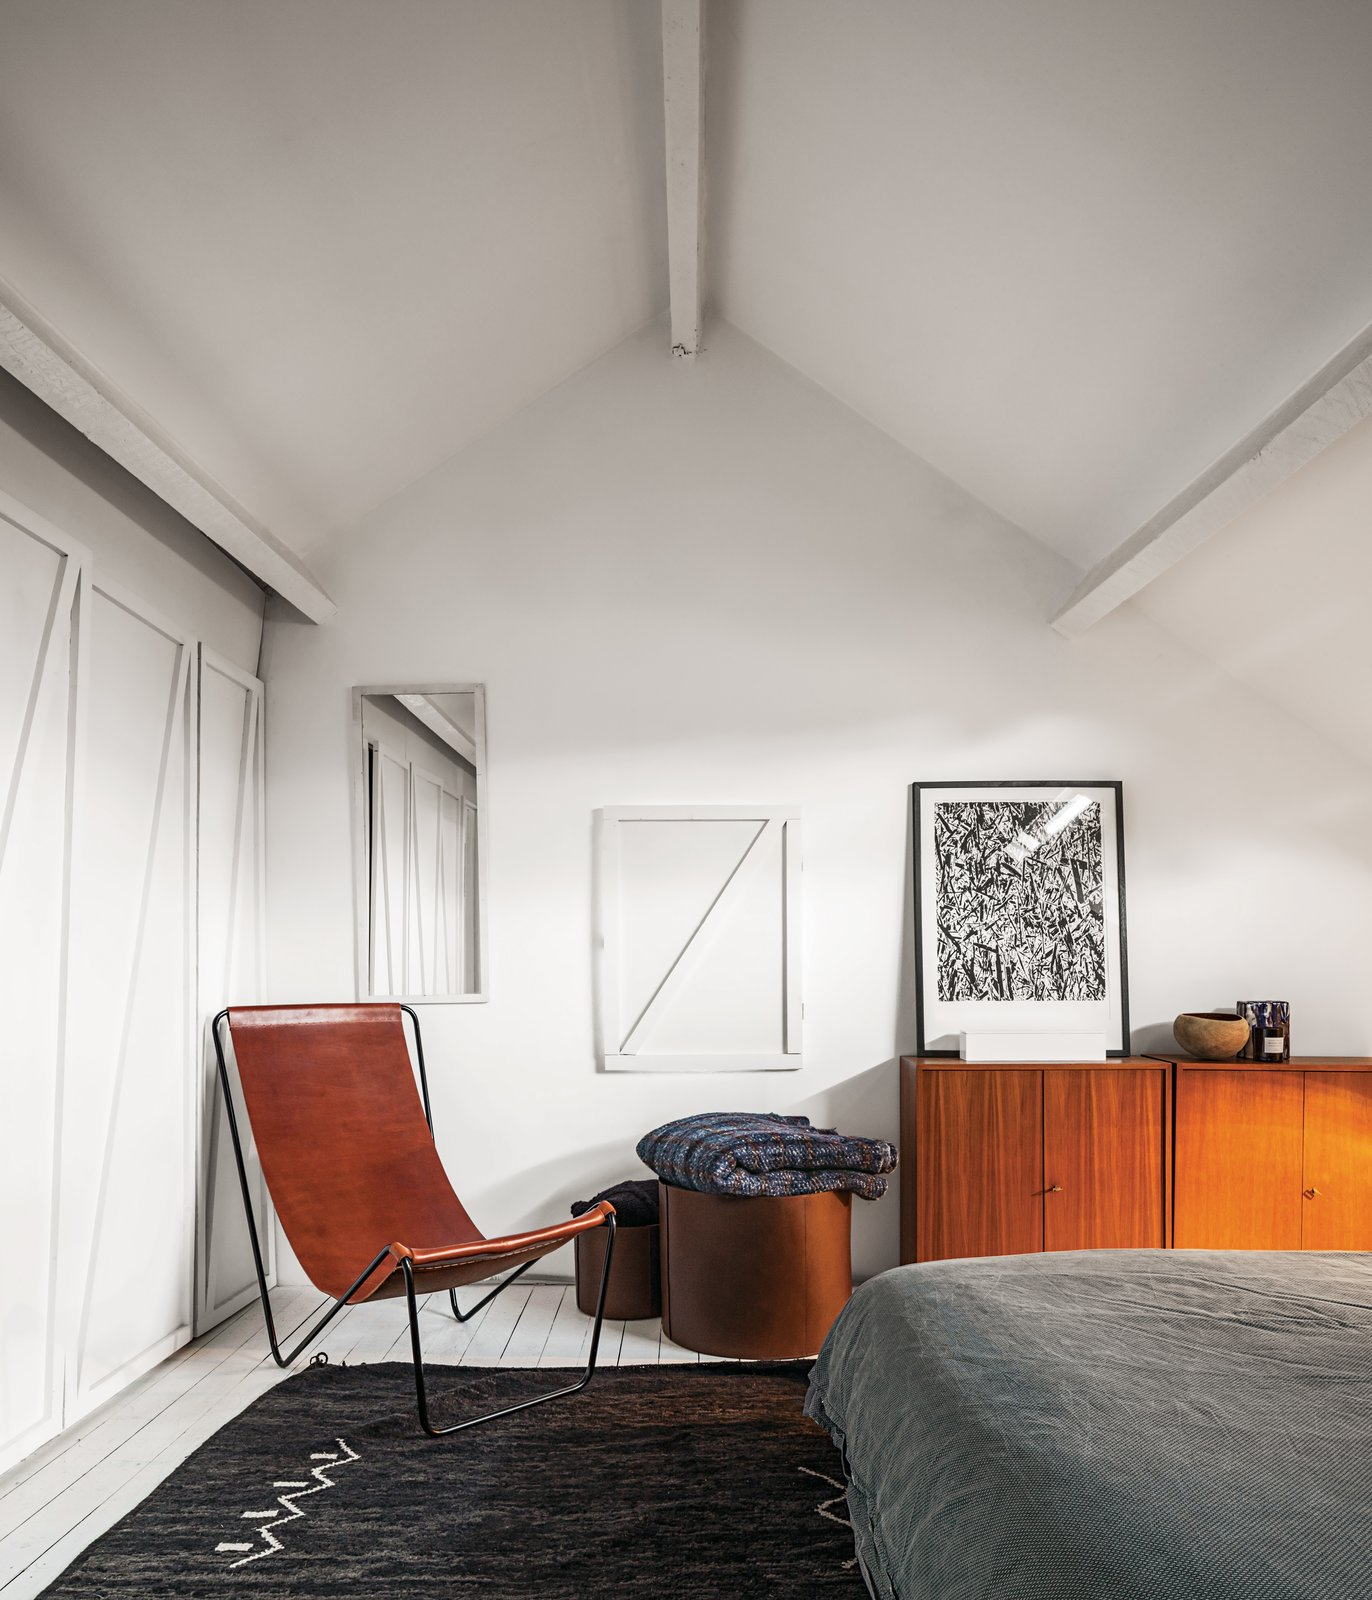 The pair painted the upstairs master bedroom white, and added a G55 sling chair and leather baskets from their recent design collections. The carpet is from a souk in Casablanca, and the bedcover is from Zara Home. Atop the vintage cup-board is an artwork by Vereecke's father. Verheyden incorporated all-new woodwork of his design into the room. Tagged: Bedroom, Chair, Bed, and Storage.  Bedroom by Lauren Gundlach from A Clever Belgian Couple Renovate Their Aging Brick Home